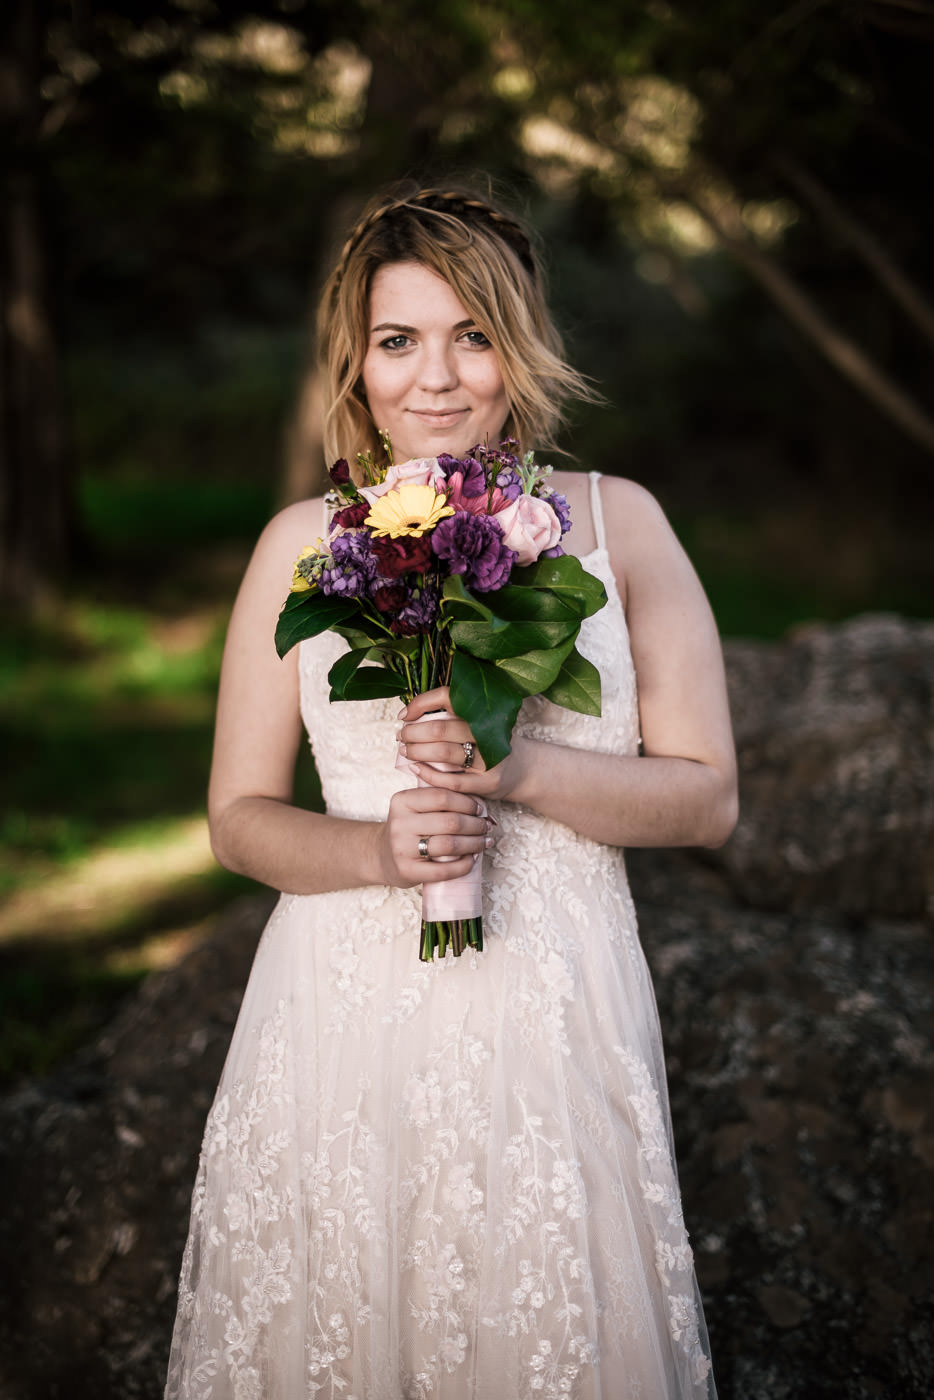 Beautiful bride poses with her wedding bouquet and smiels at the camera.